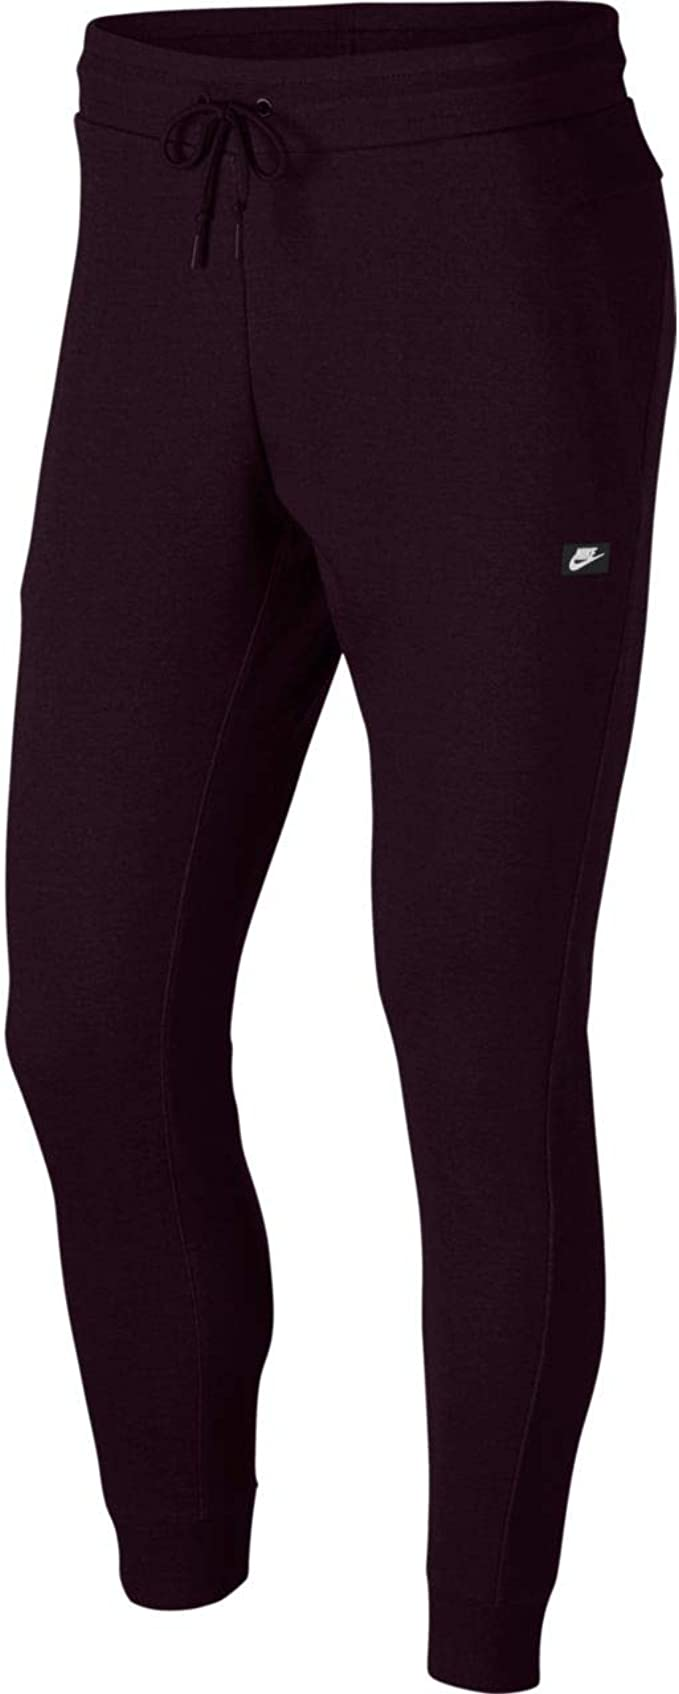 molestarse Erradicar Barriga  Nike Men's Sportswear Optic Jogger Pants: Amazon.ca: Clothing & Accessories